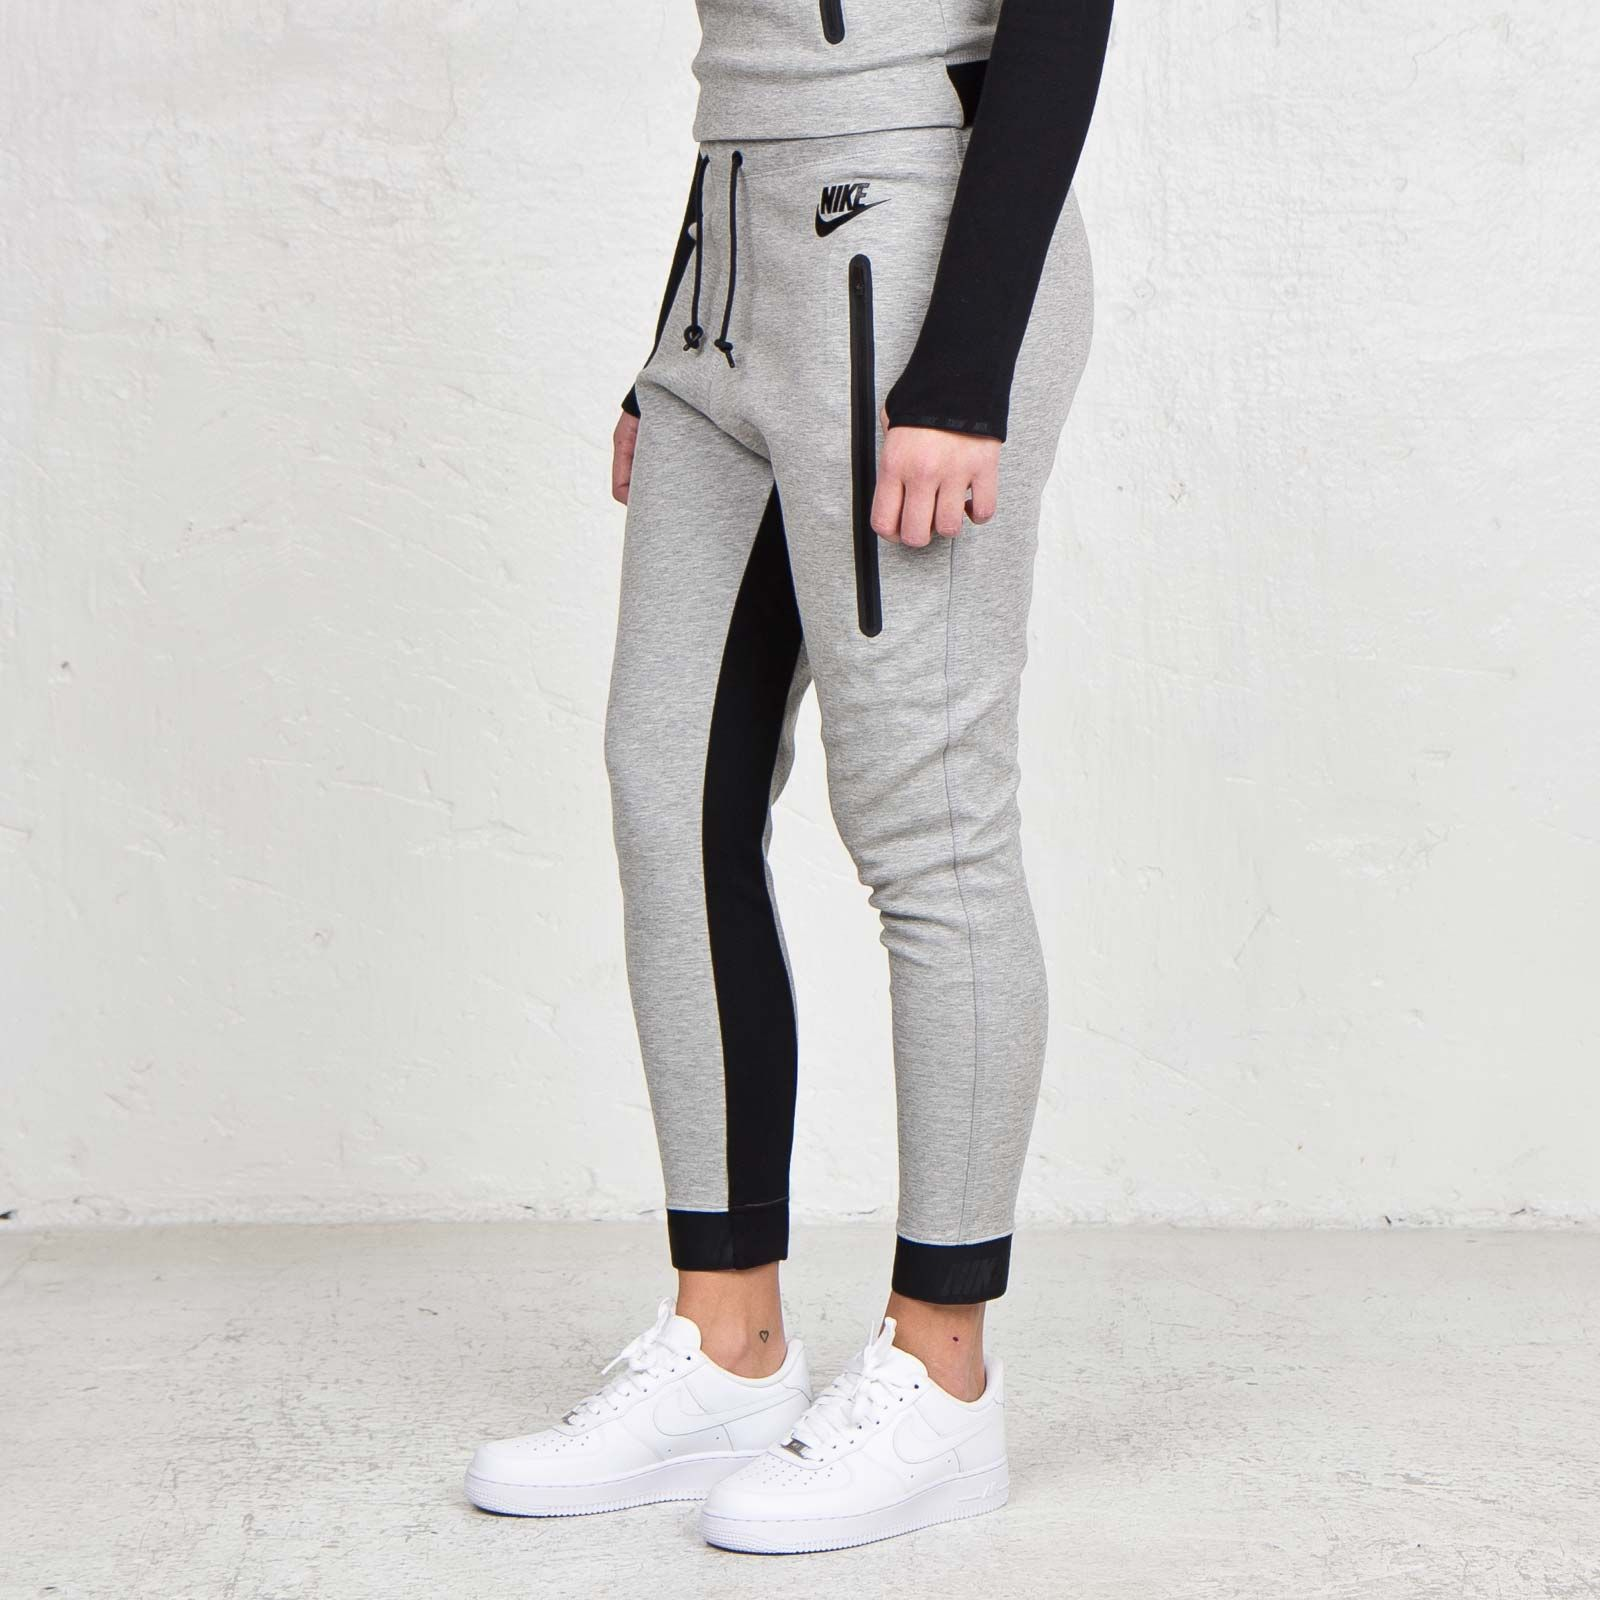 a6a237e2775f NIKE AIR FORCE 1 S WHITE LEATHER WOMEN S + NIKE TRACK SUIT ...